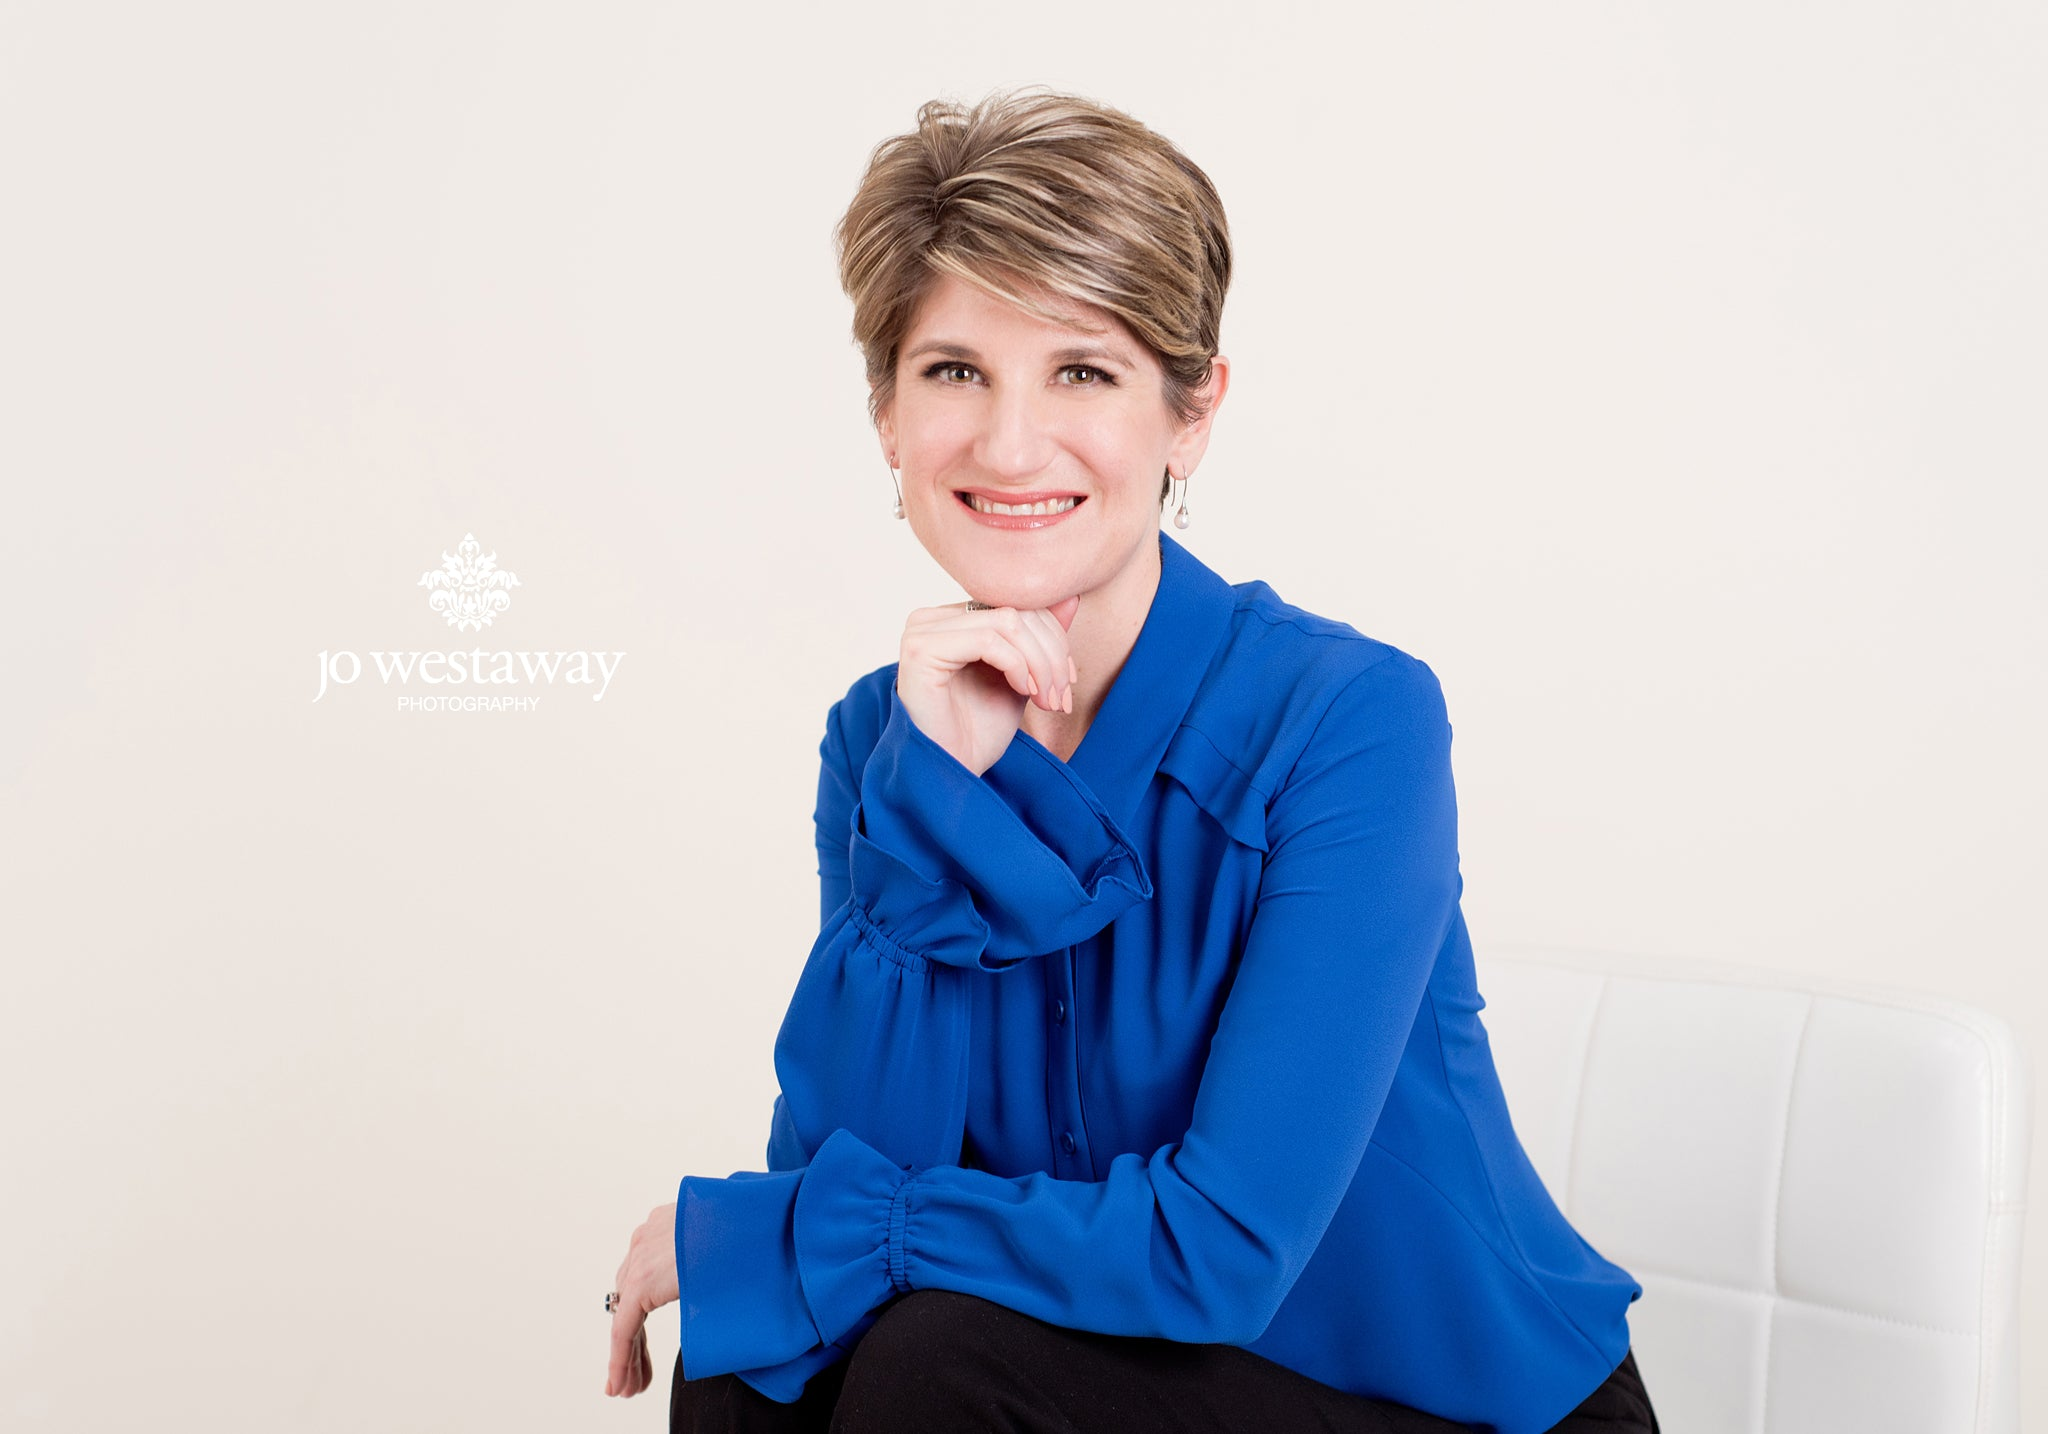 Headshots and profile photos for business women and professionals - Linkedin & Facebook profiles